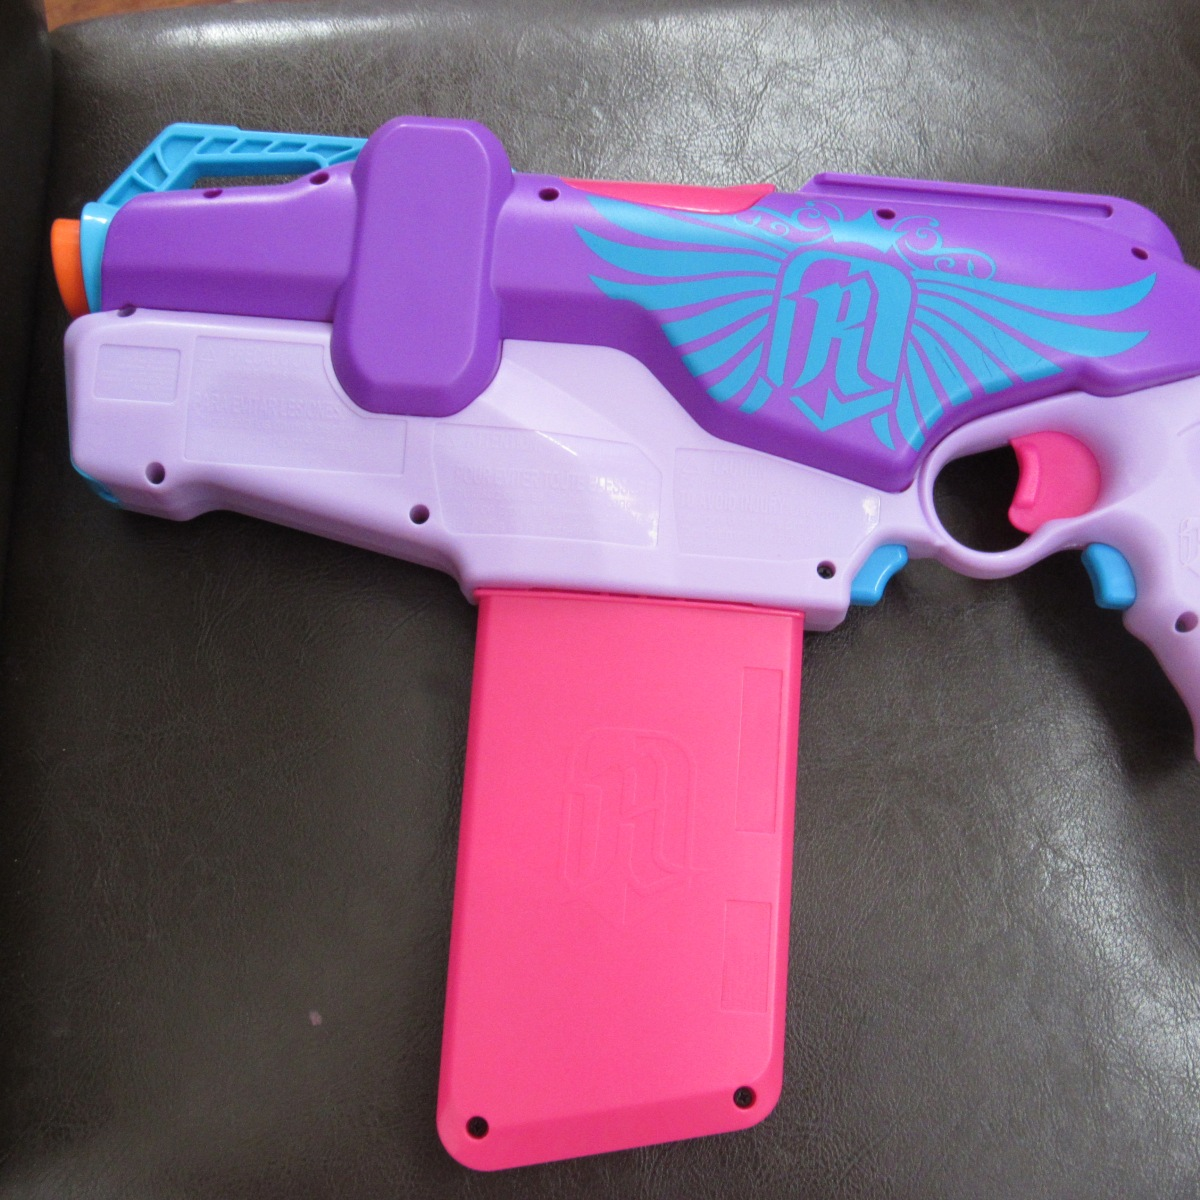 Product Review: Rapid Red Blaster, NerfRebelle